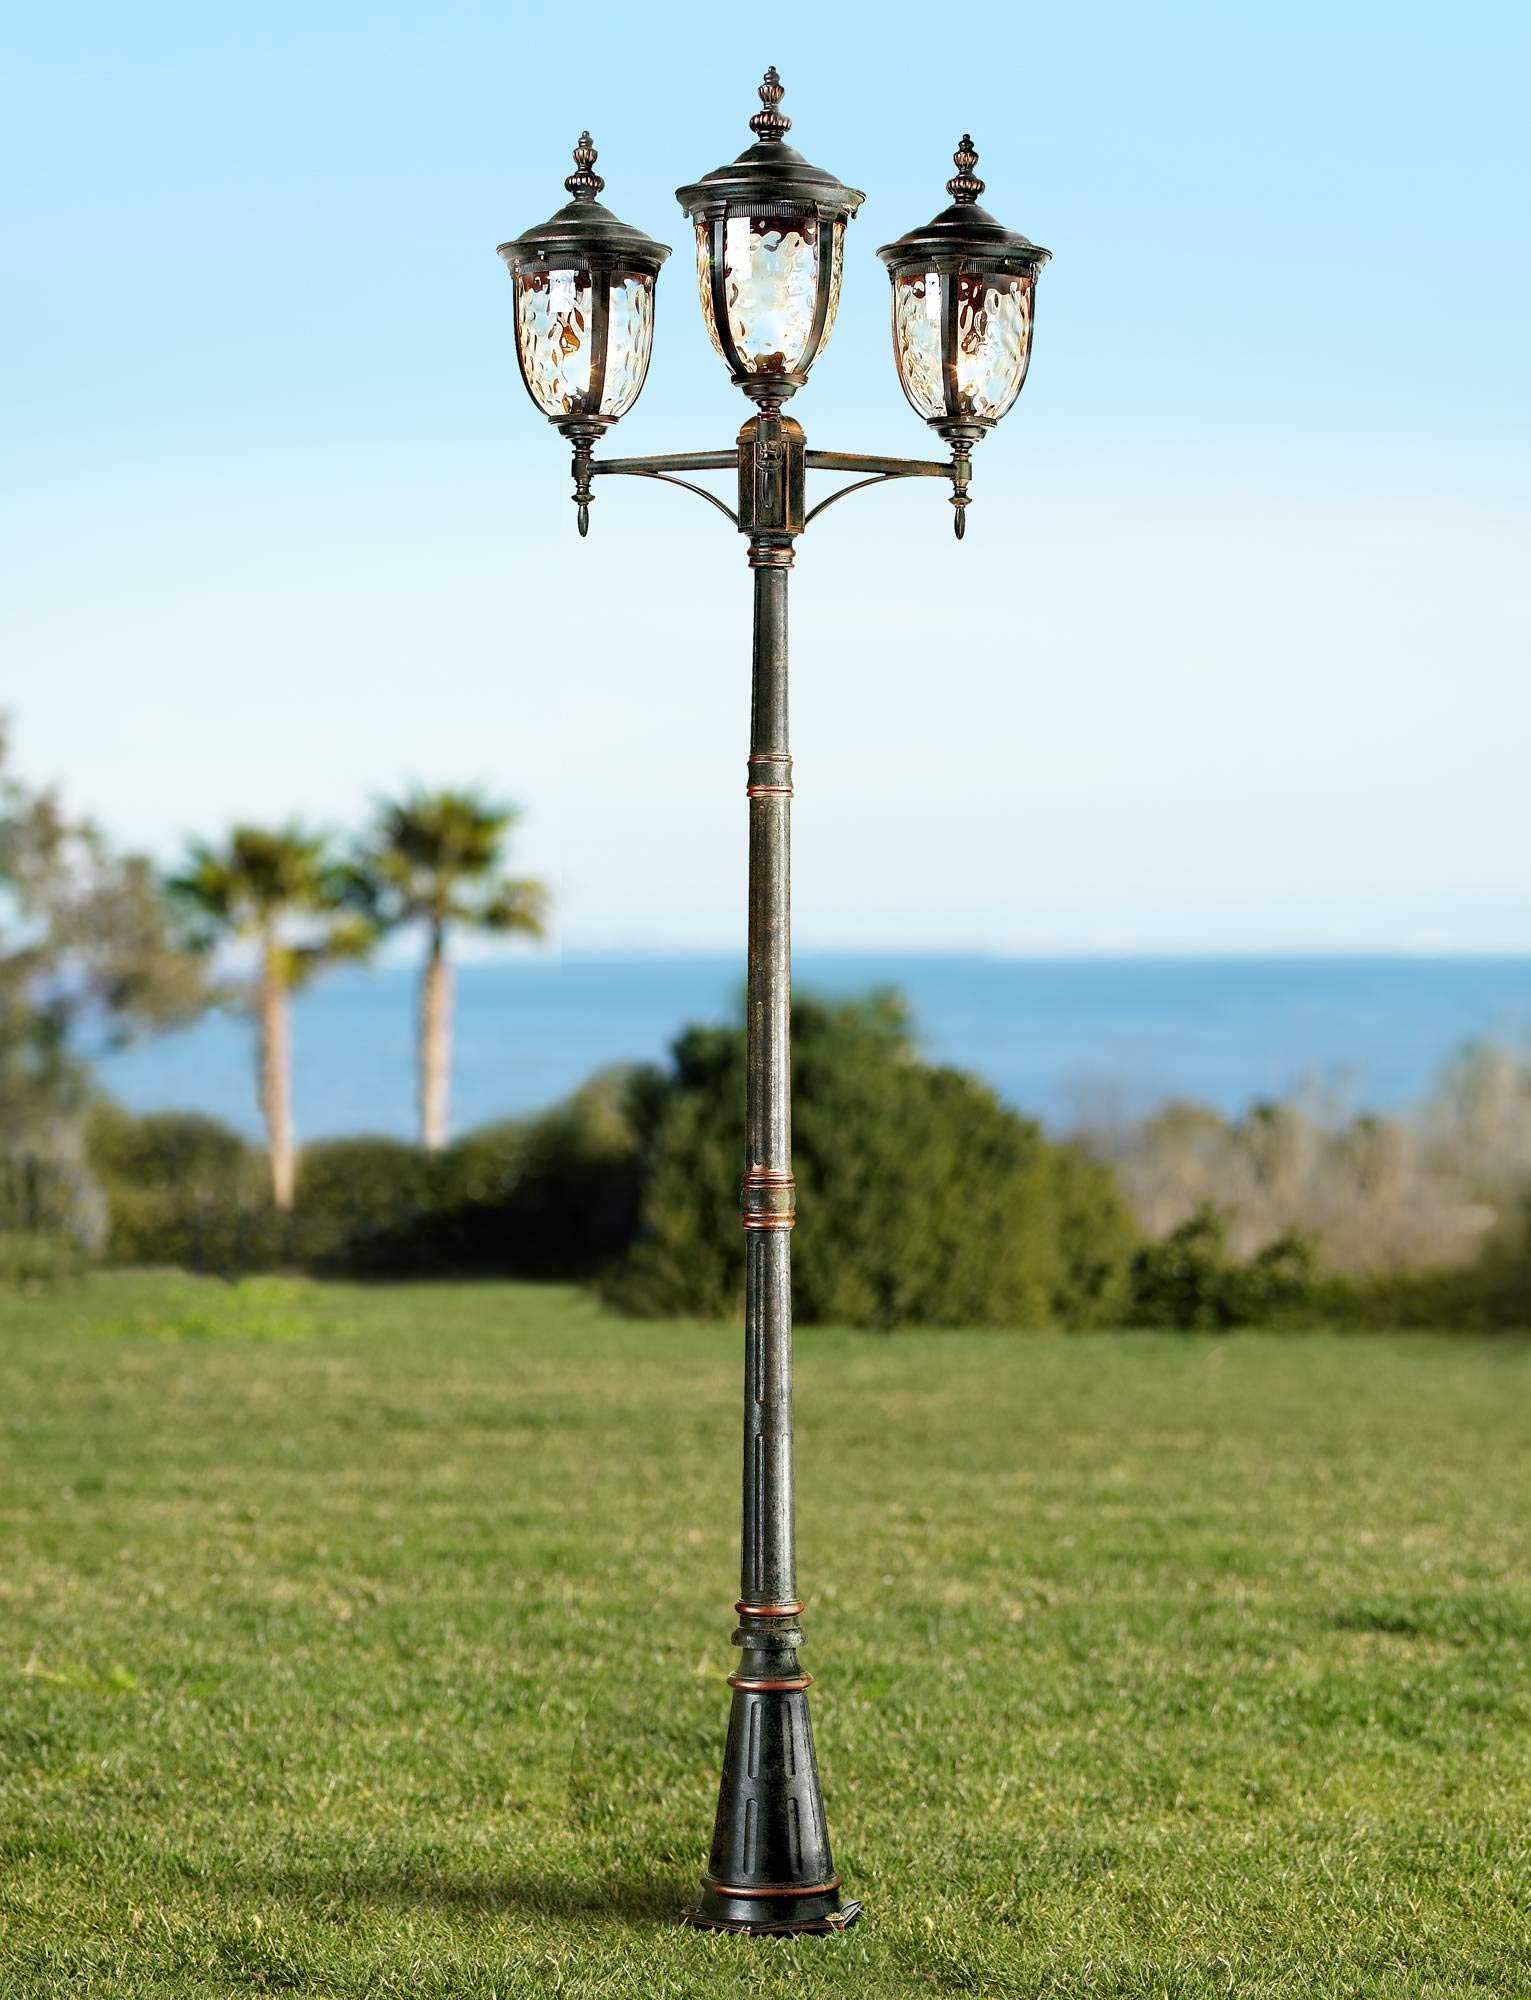 Bellagio Traditional Outdoor Post Light Street Lantern 3 Light Veranda Bronze 96'' Clear Hammered Glass for Exterior Garden Yard Driveway - John Timberland